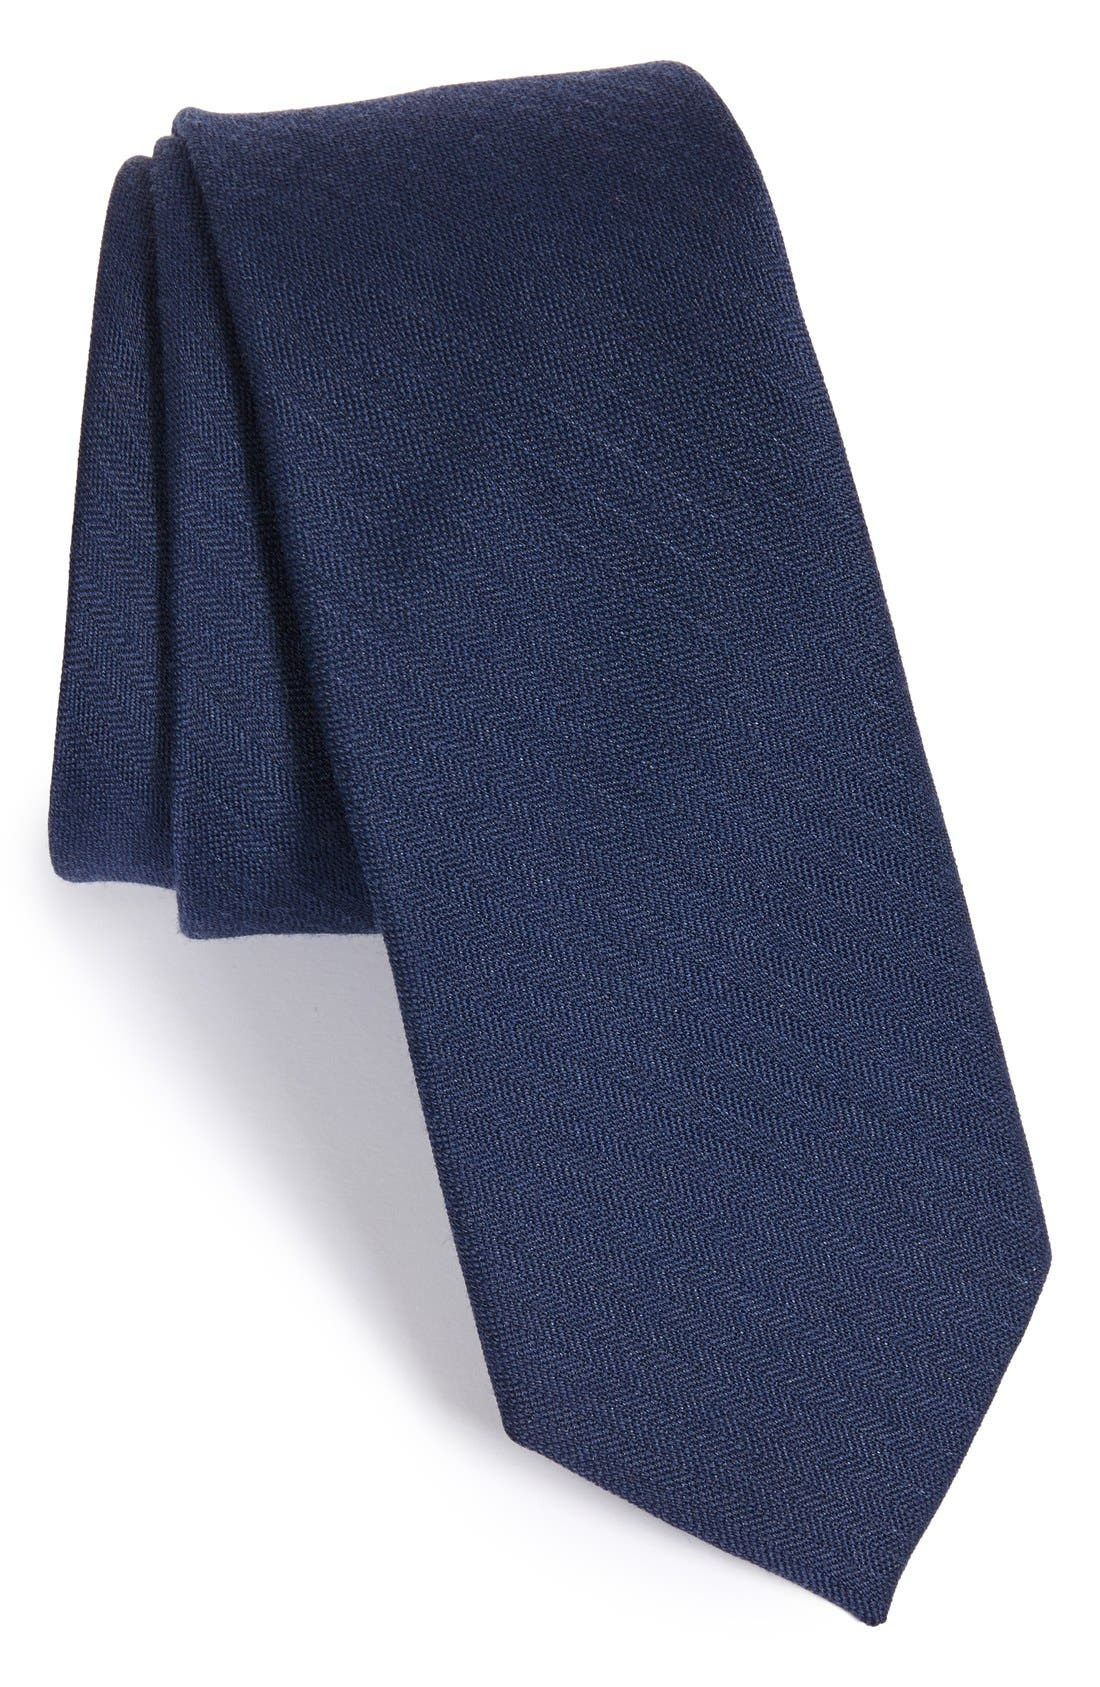 Alternate Image 1 Selected - The Tie Bar Solid Wool & Silk Tie